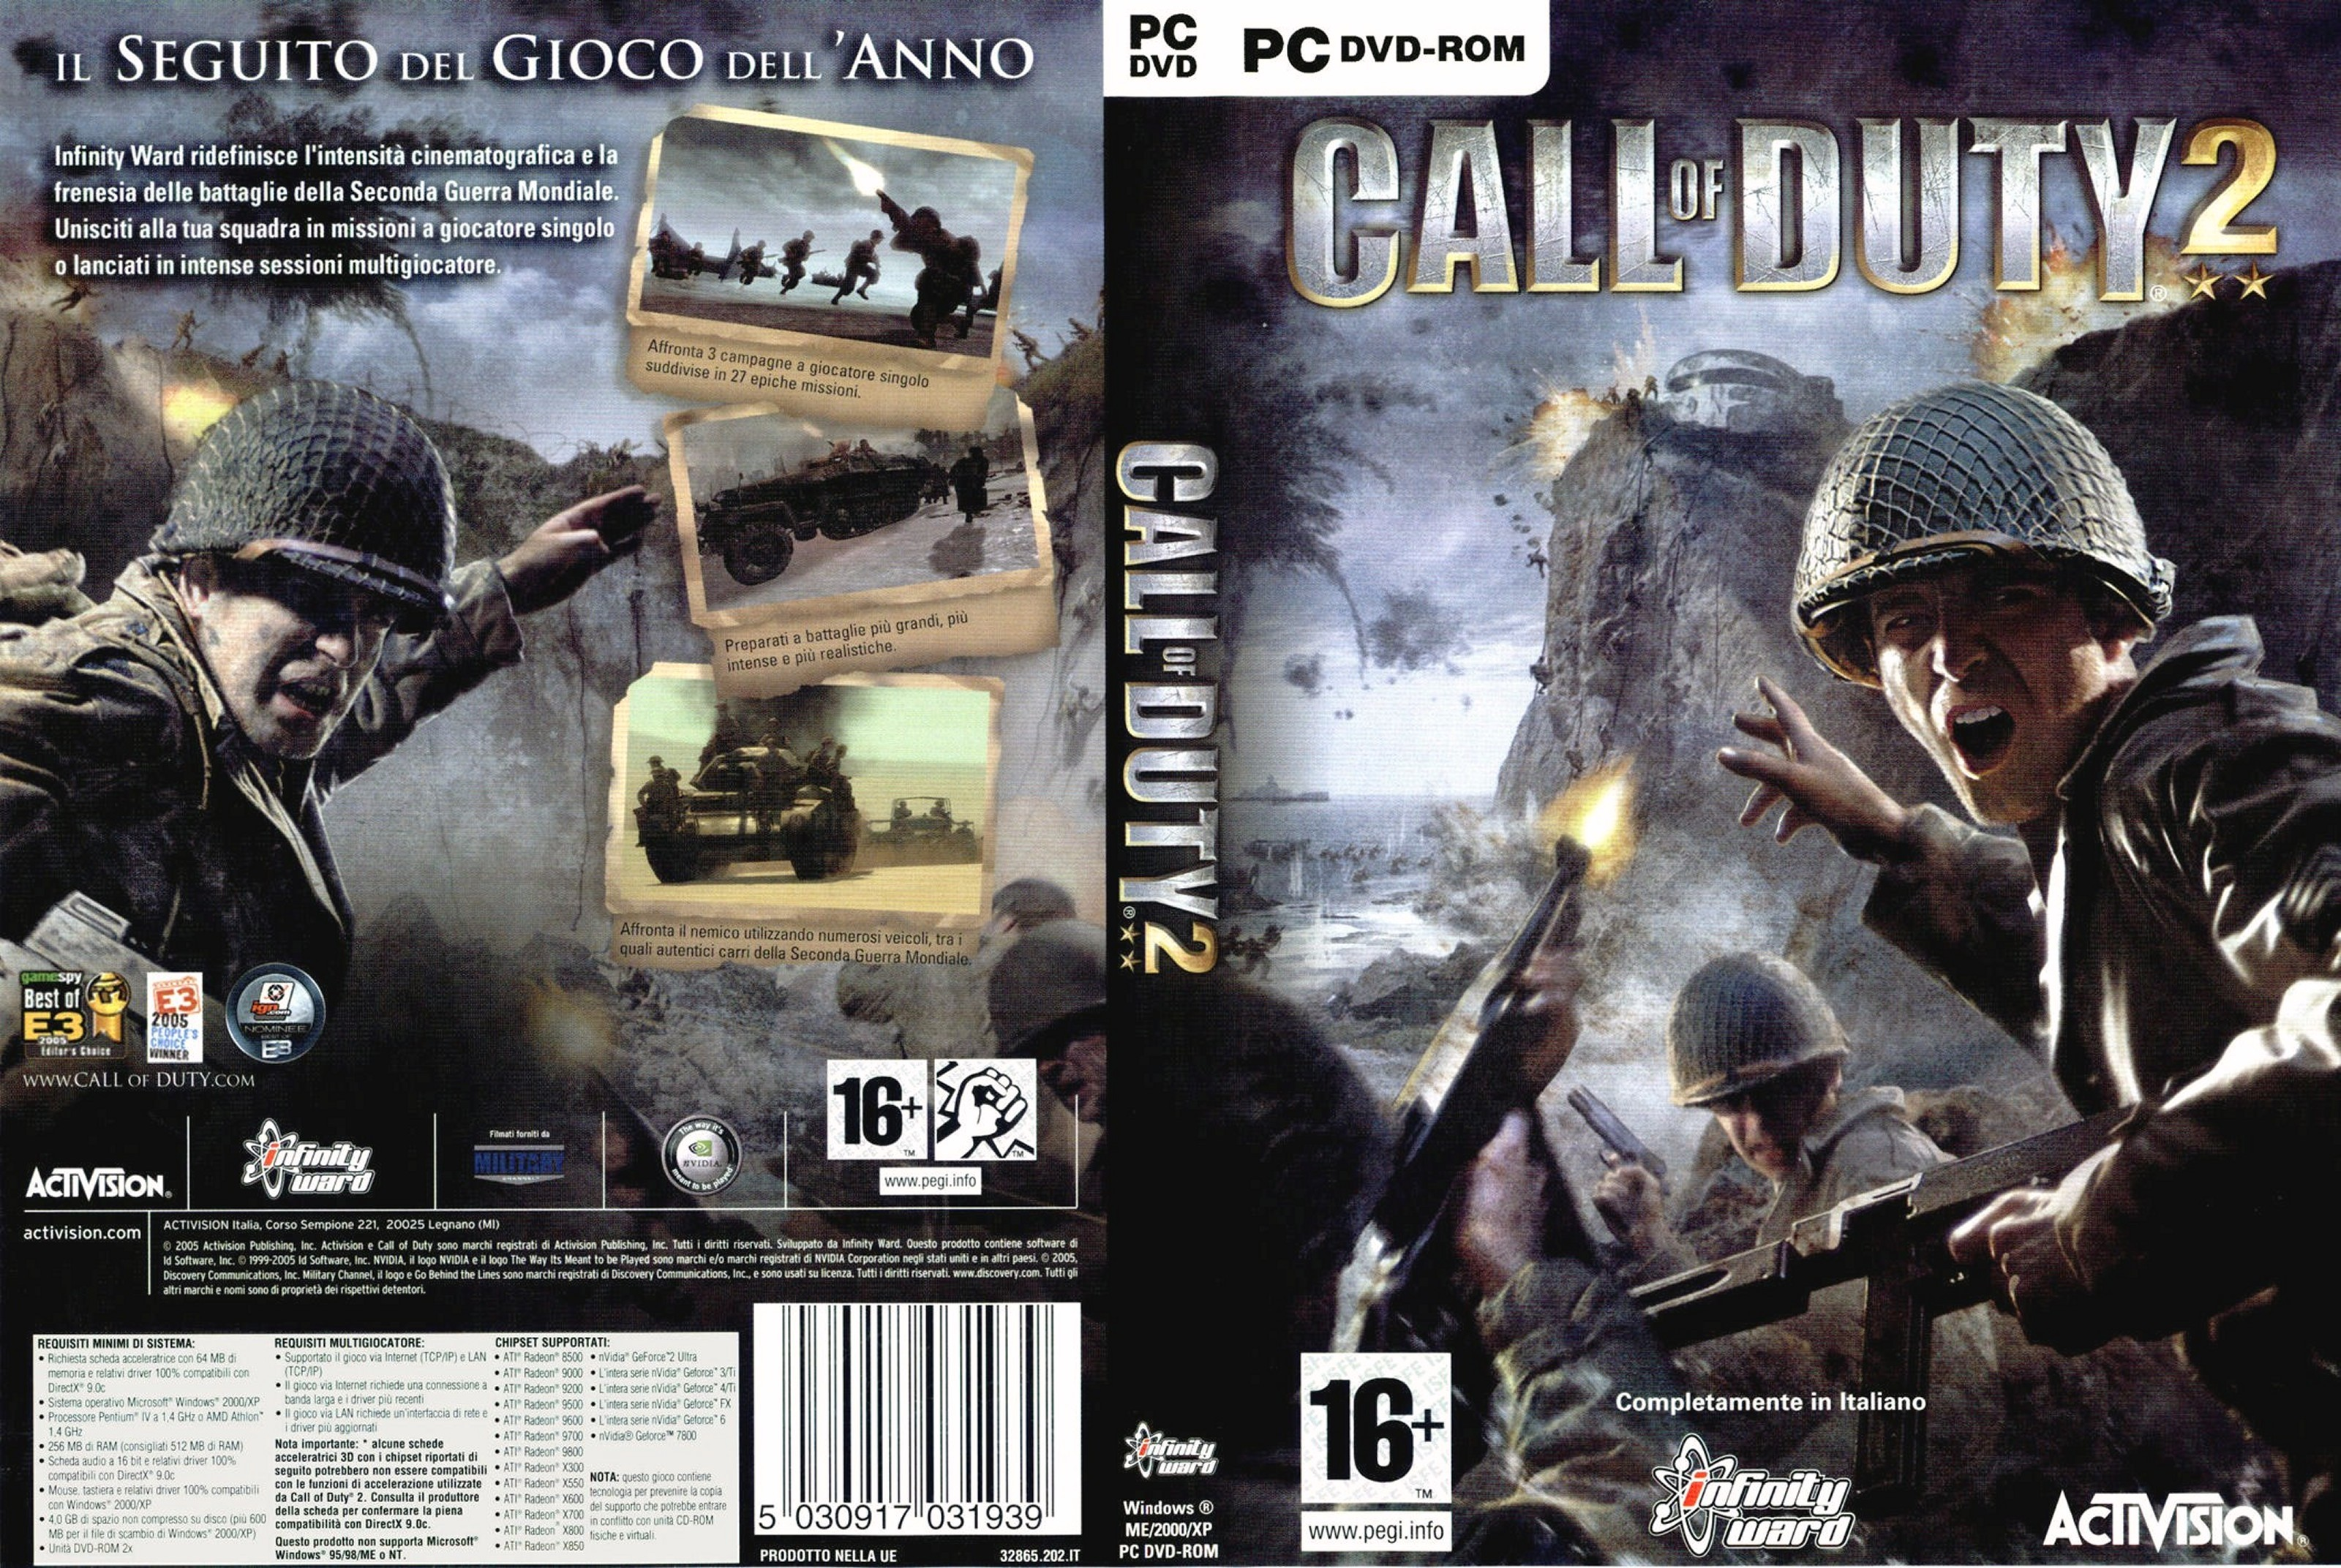 Game DVD Covers.